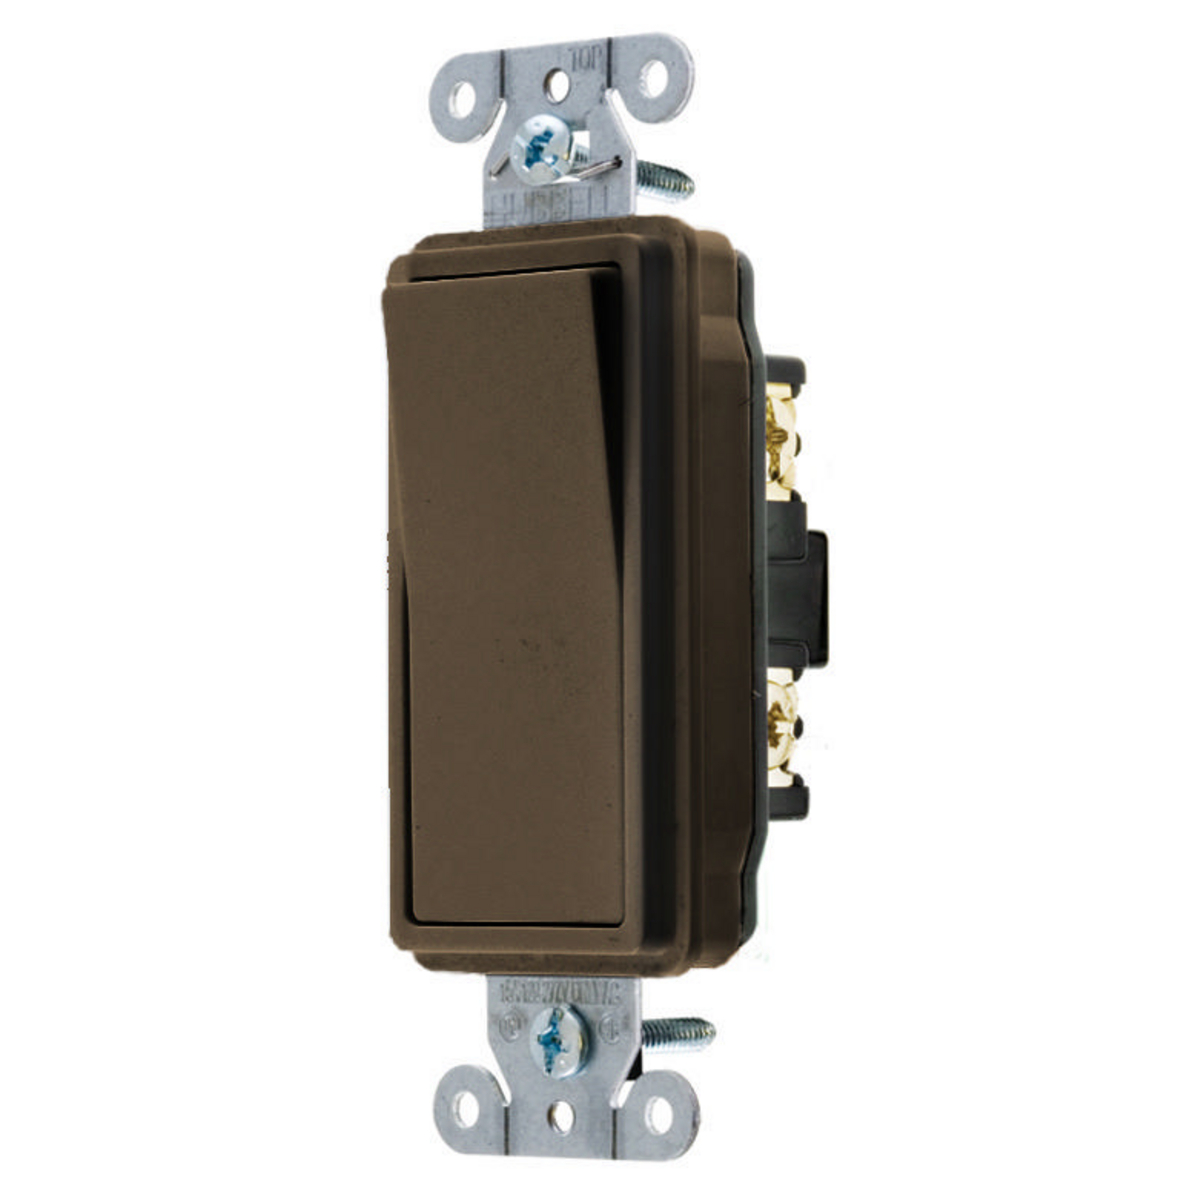 Hubbell DS120 20 Amp 120/277 Volt Brown 1-Pole Decorator Switch